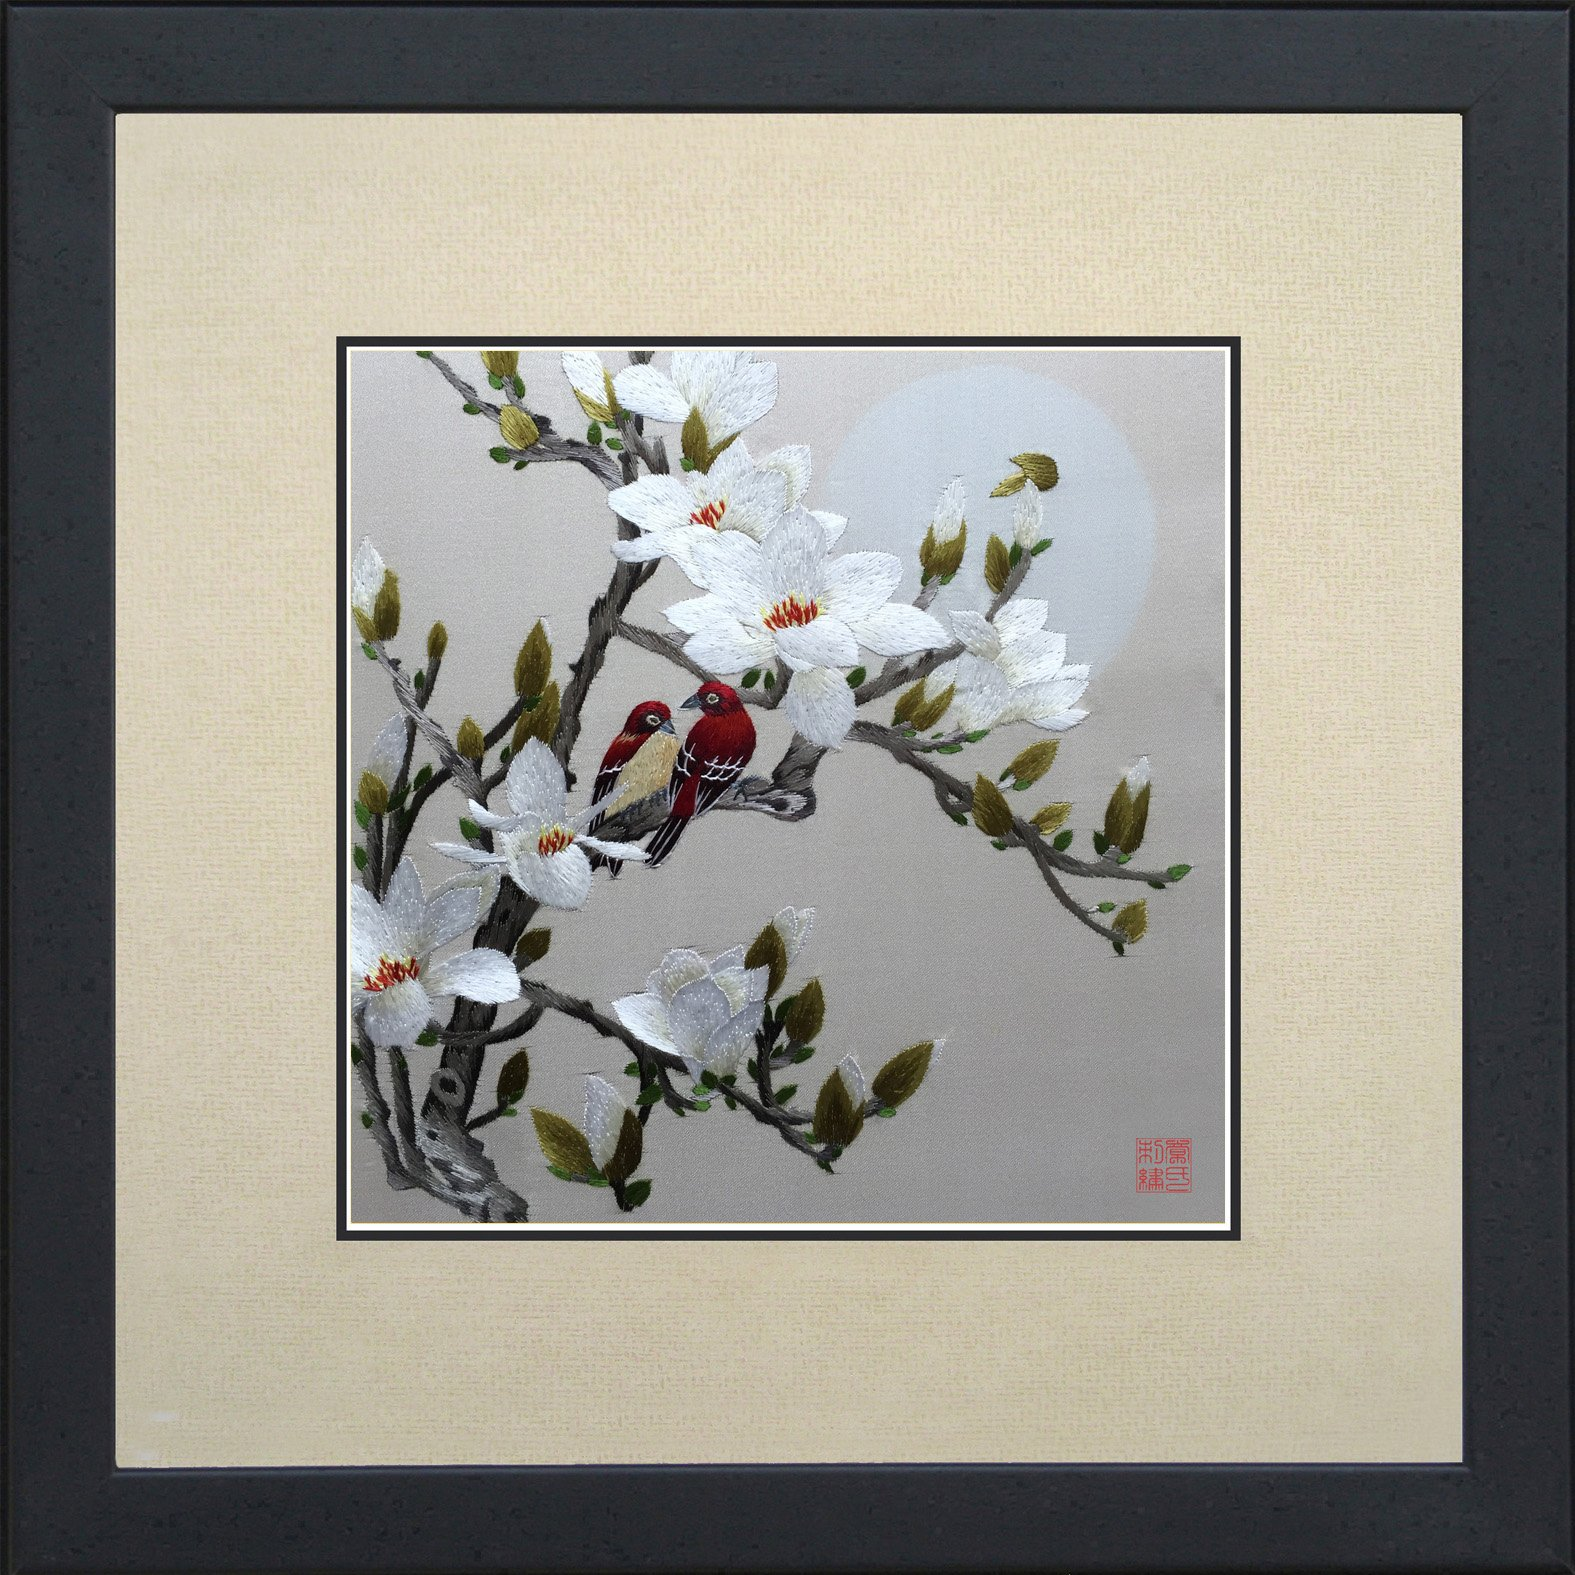 King Silk Art 100% Handmade Embroidery Mixed Group Love Birds on Cherry Blossom Trees Chinese Print Wildlife Bird Painting Anniversary Wedding Birthday Party Gifts Oriental Asian Wall Art 31041WFG